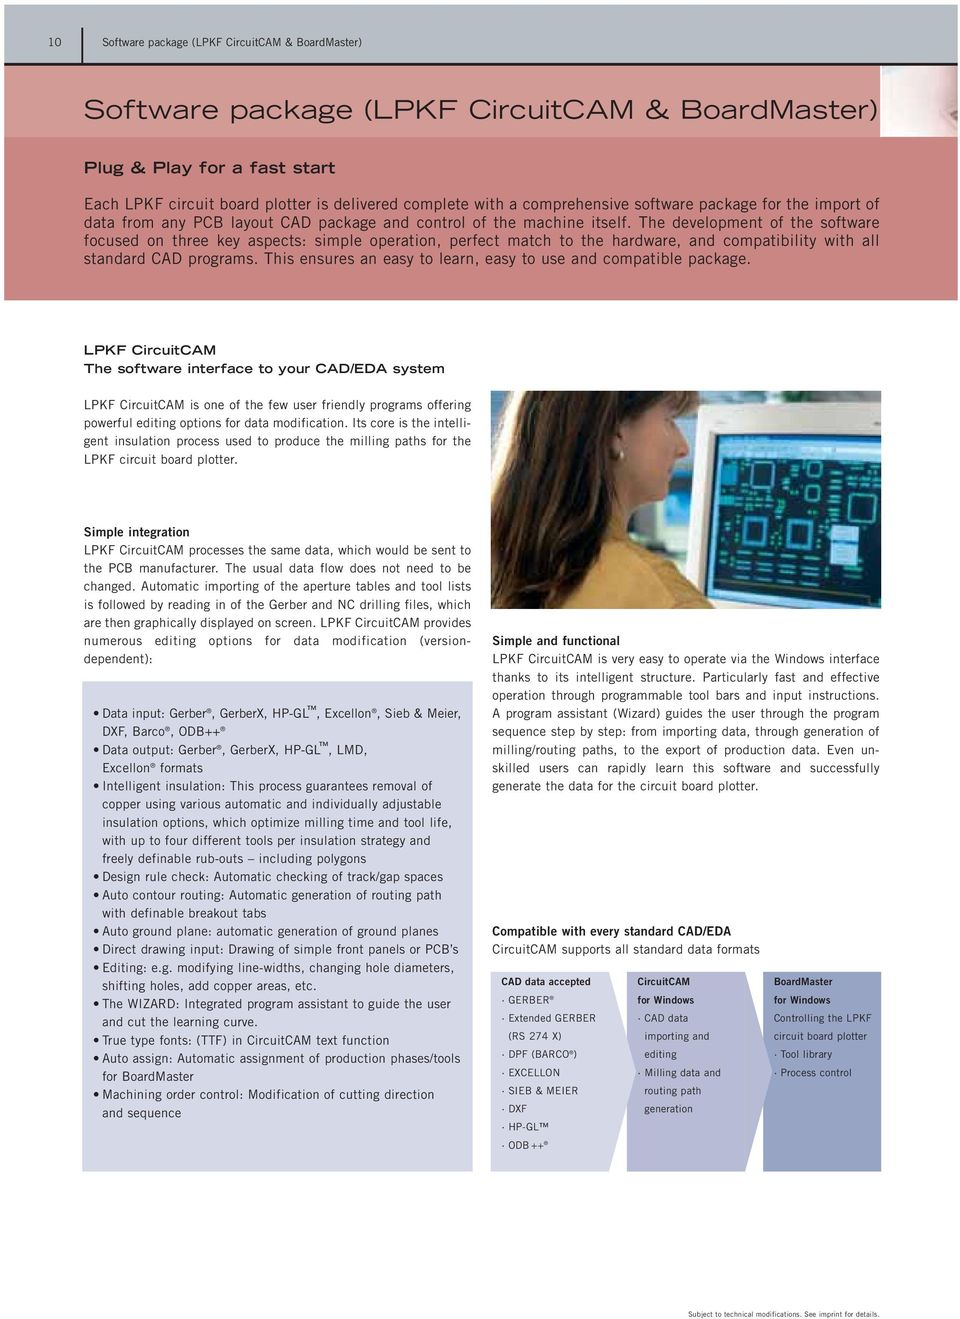 Rapid Pcb Prototyping Product Catalog 02 03 Pdf Electronic Circuits Software Pic Electrical Cad Electronics The Development Of Focused On Three Key Aspects Simple Operation Perfect Match